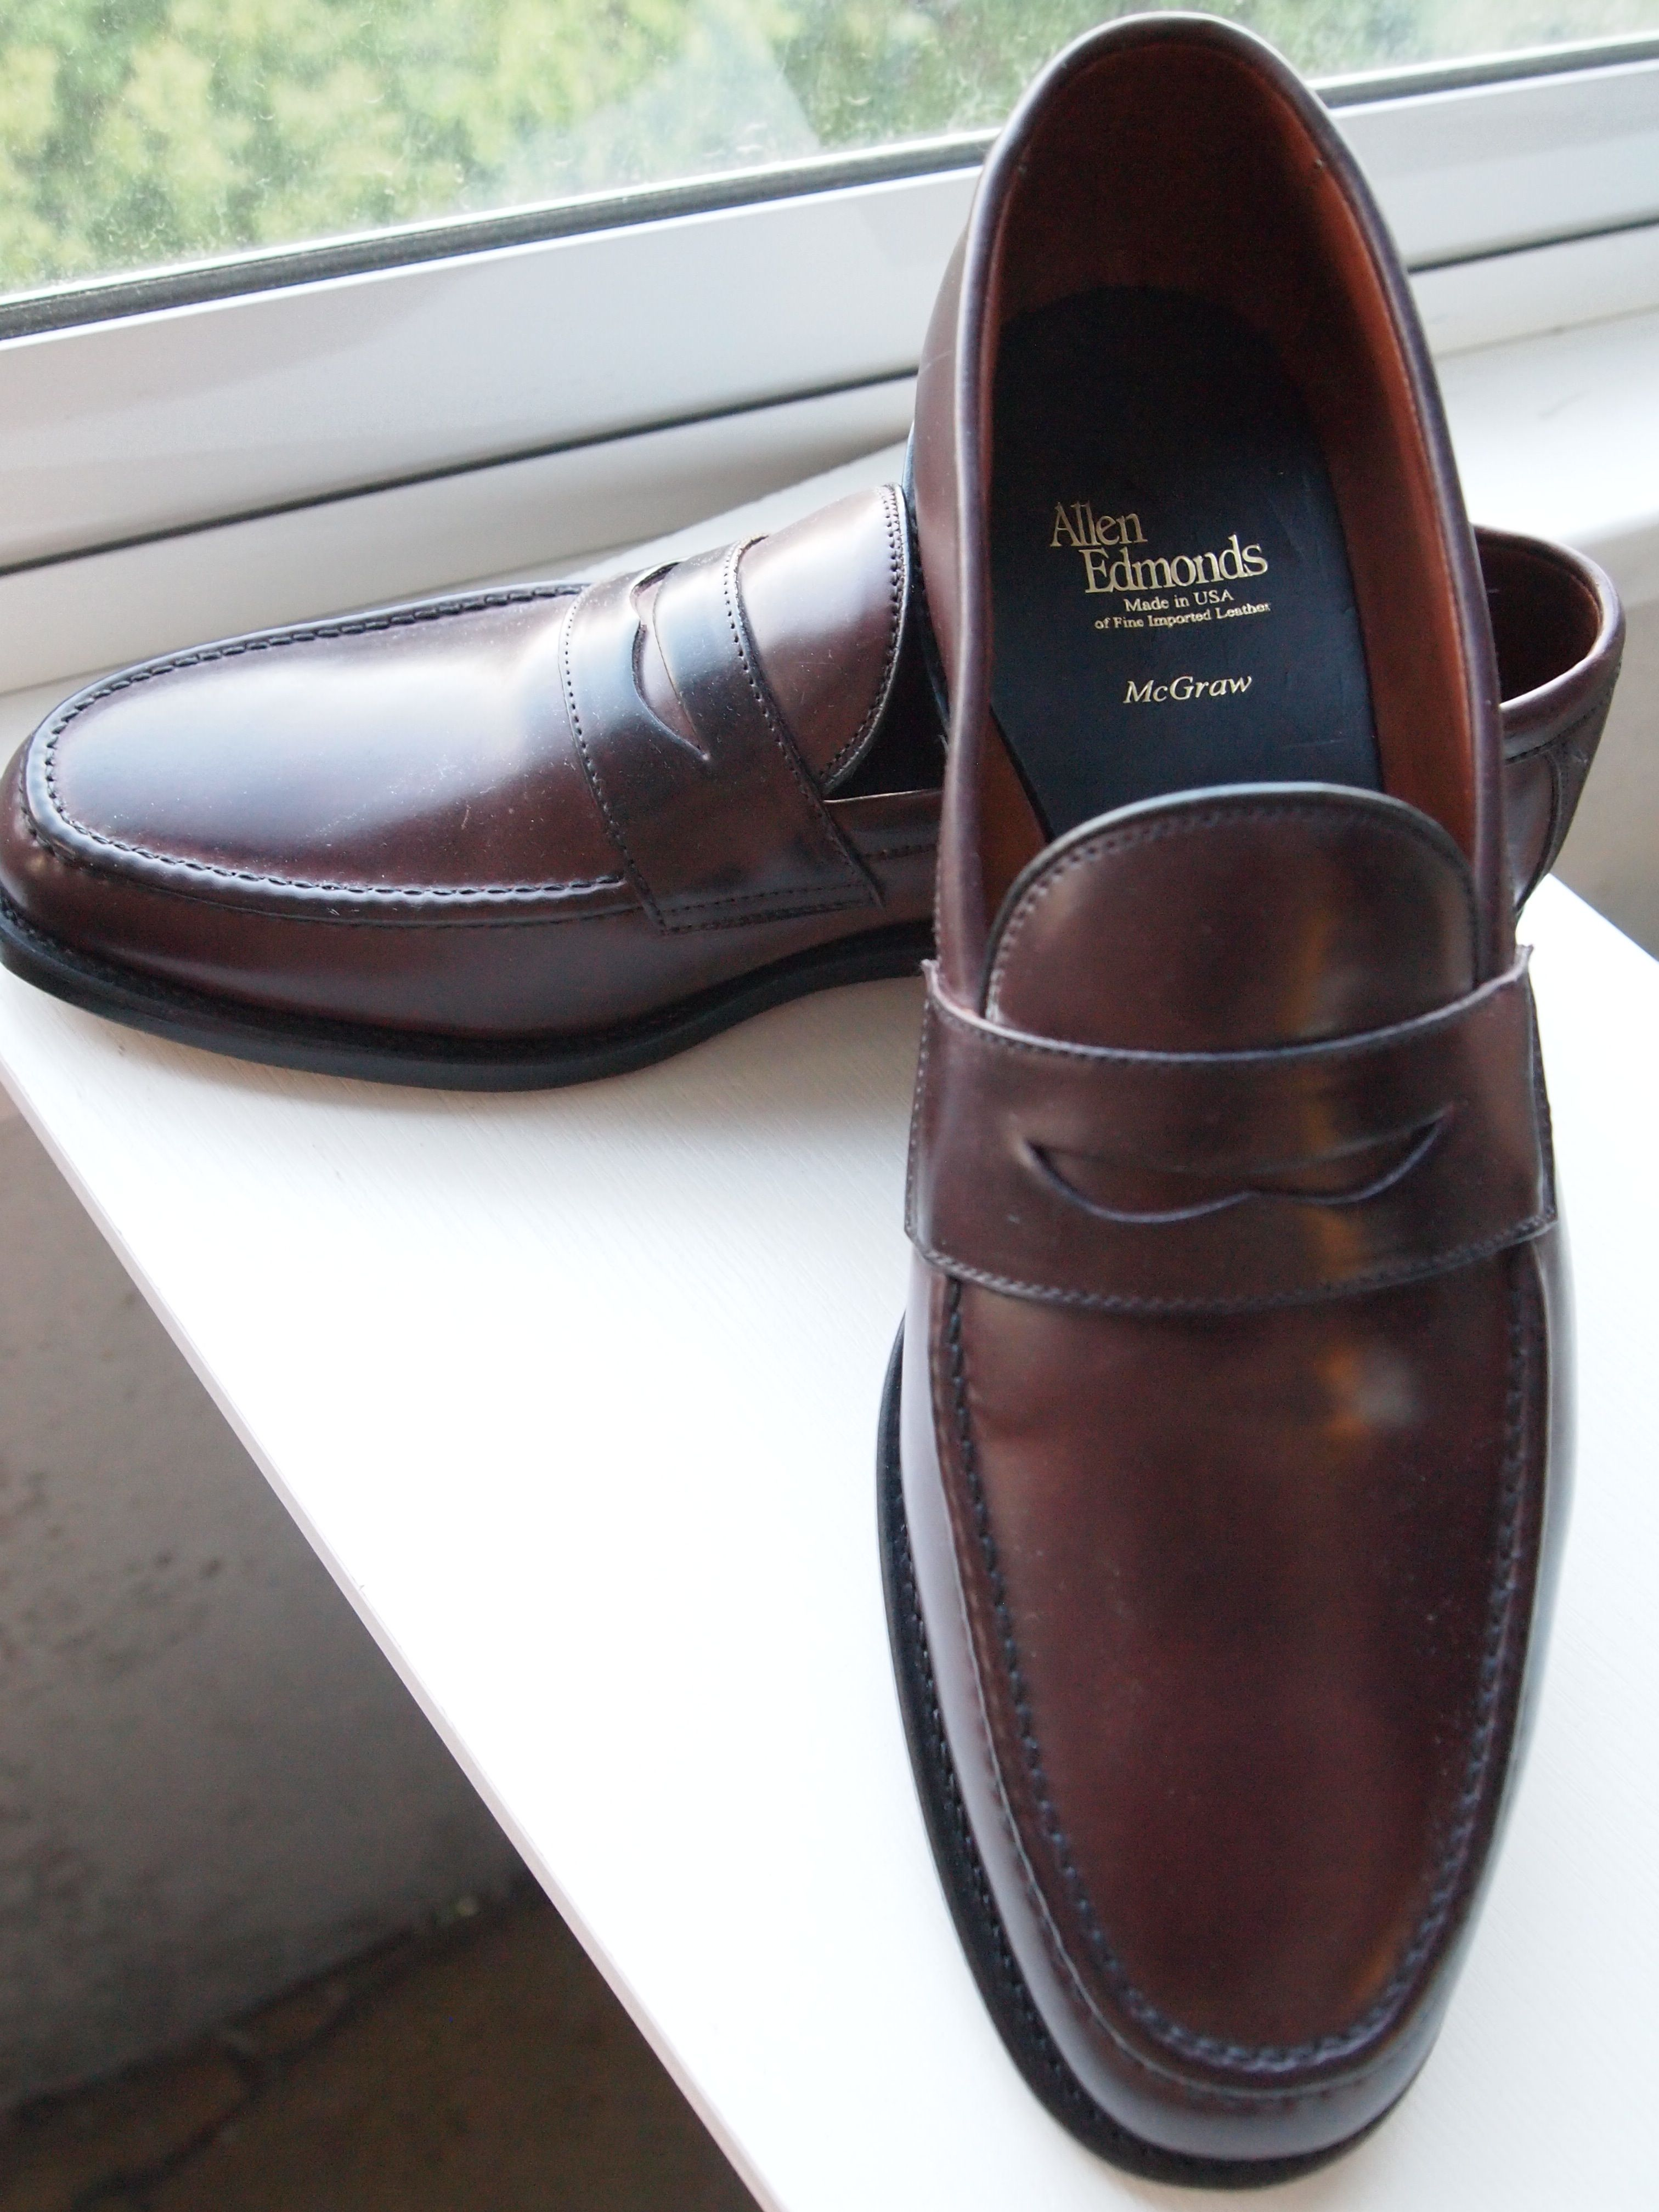 8b89f4ea5f8 Allen Edmonds McGraw